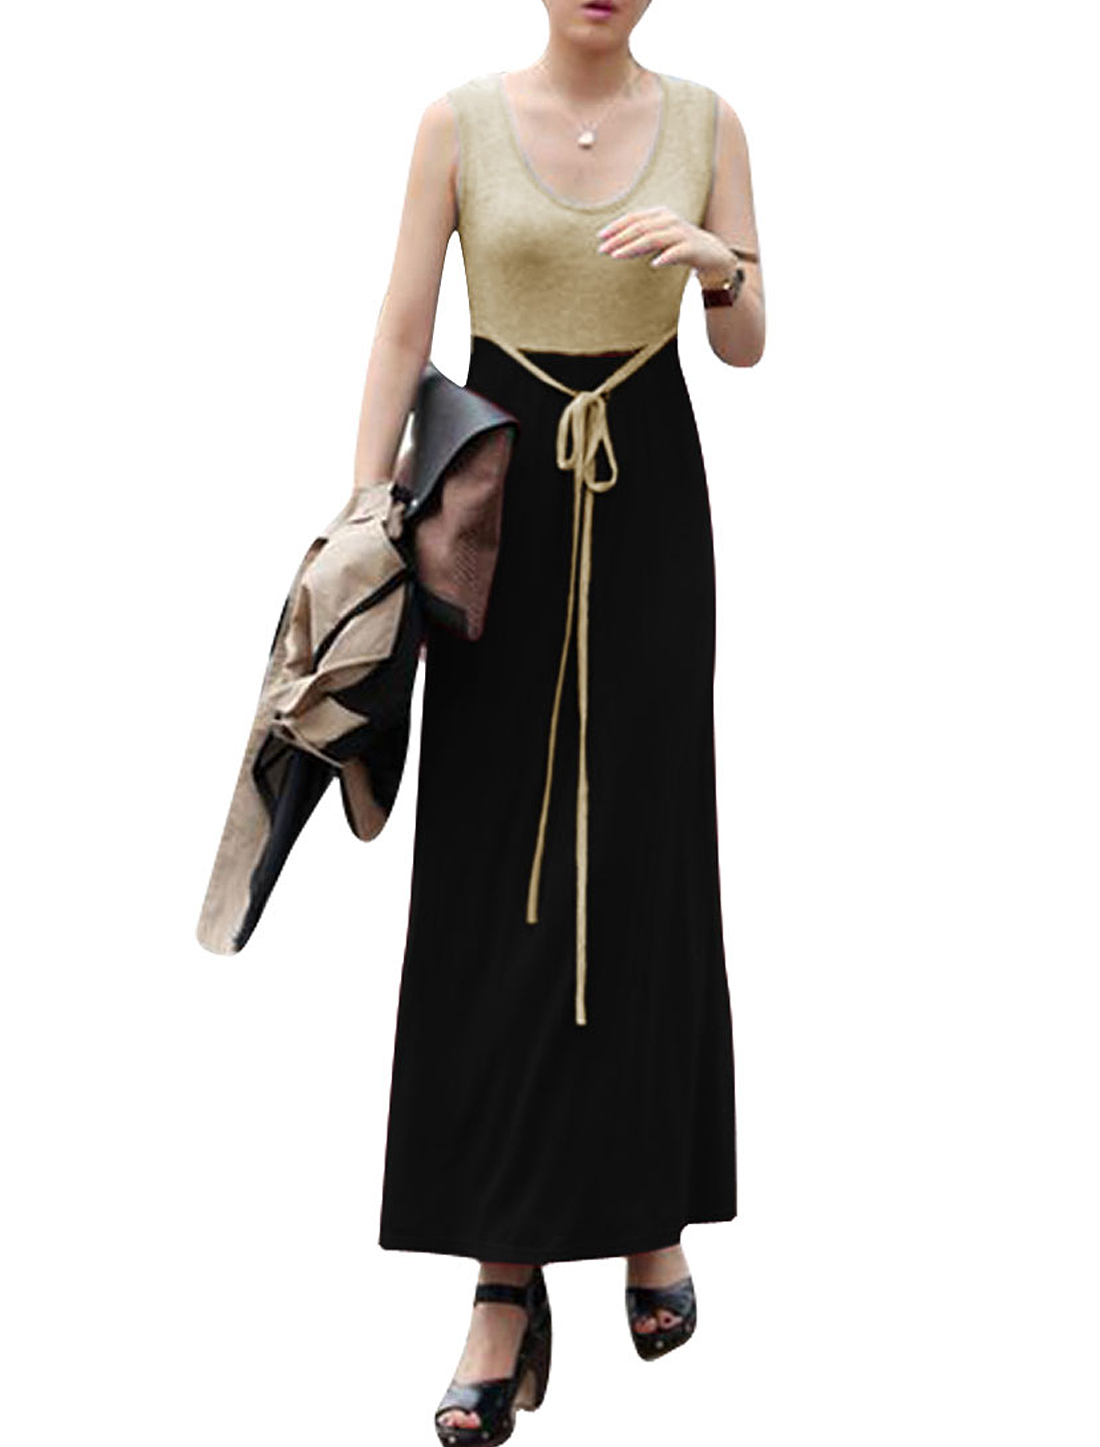 Women Round Neck Drawstring Waist Sleeveless Design Casual Dress Black XS